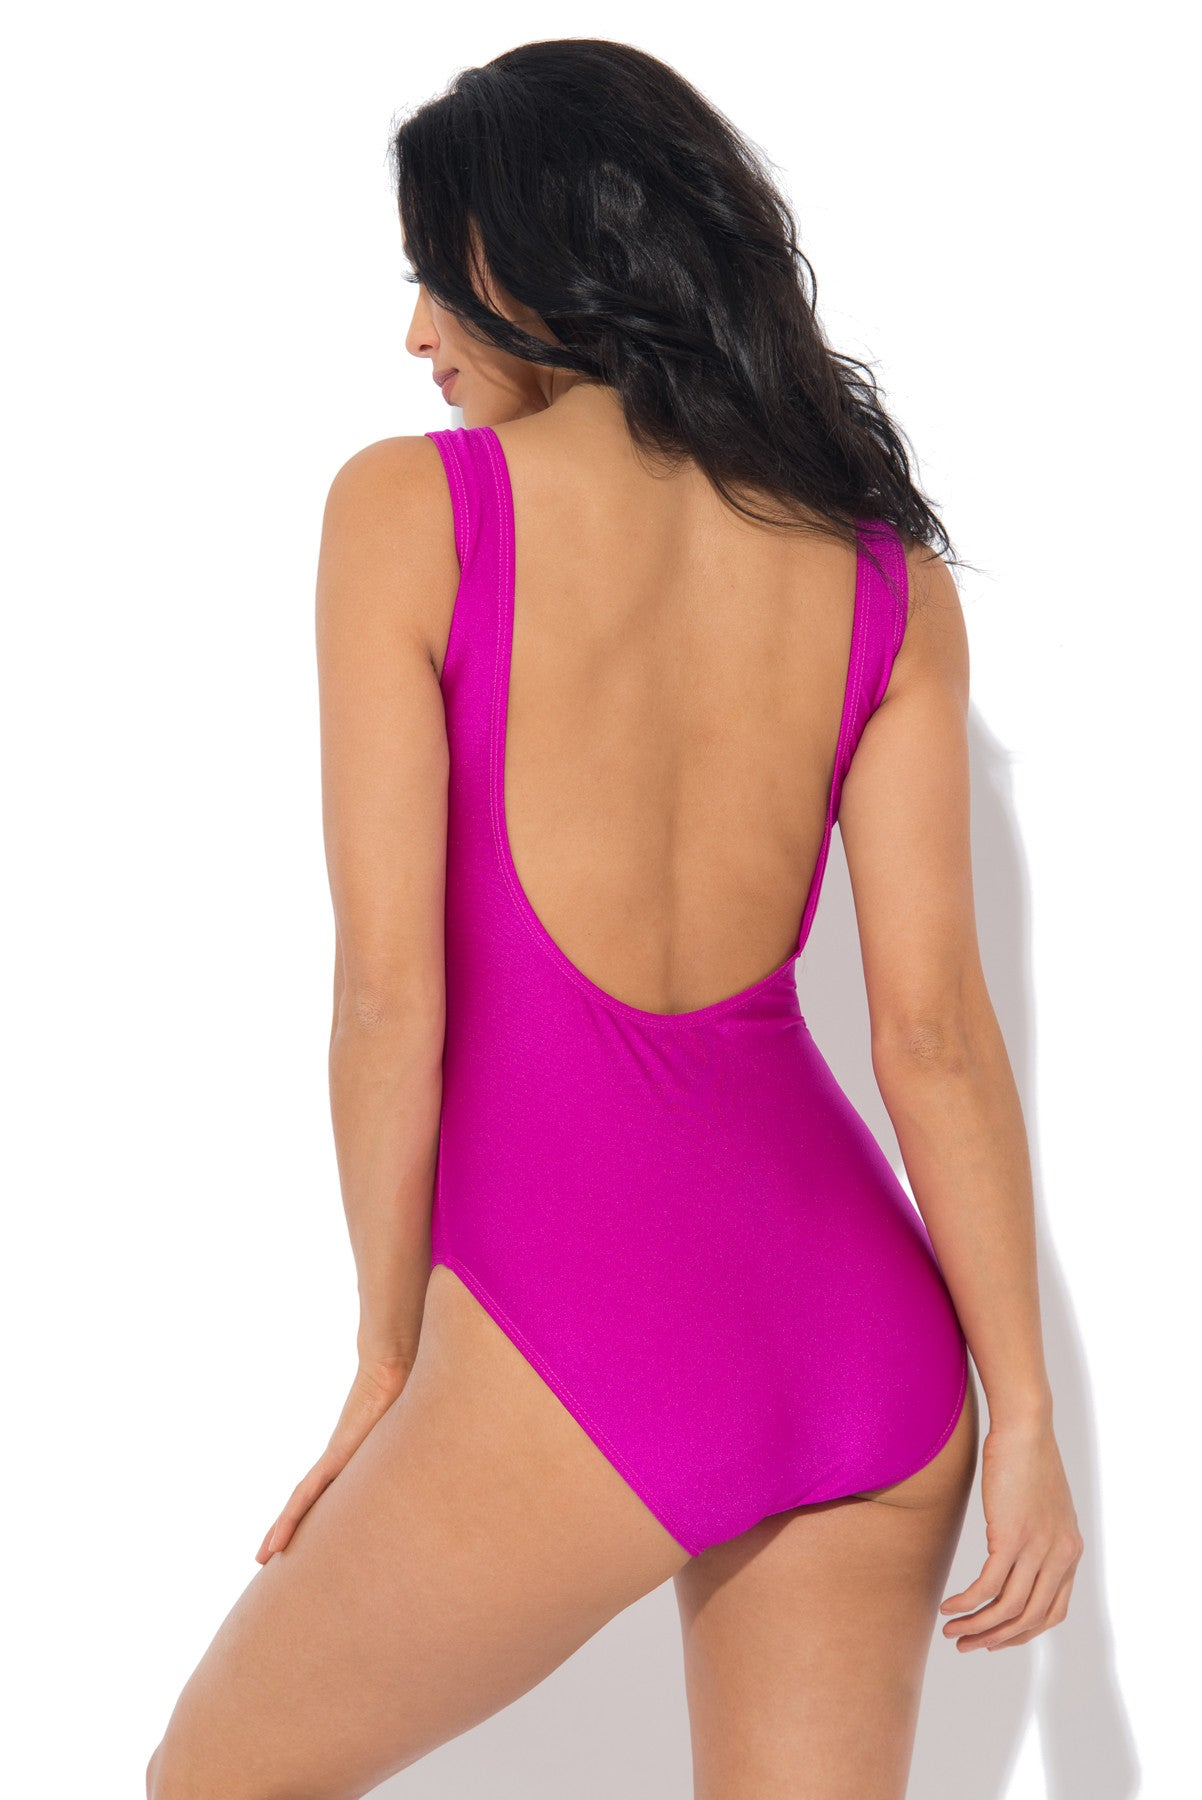 Mermaid One Piece Swimsuit PURPLE - Fashion Effect Store  - 3